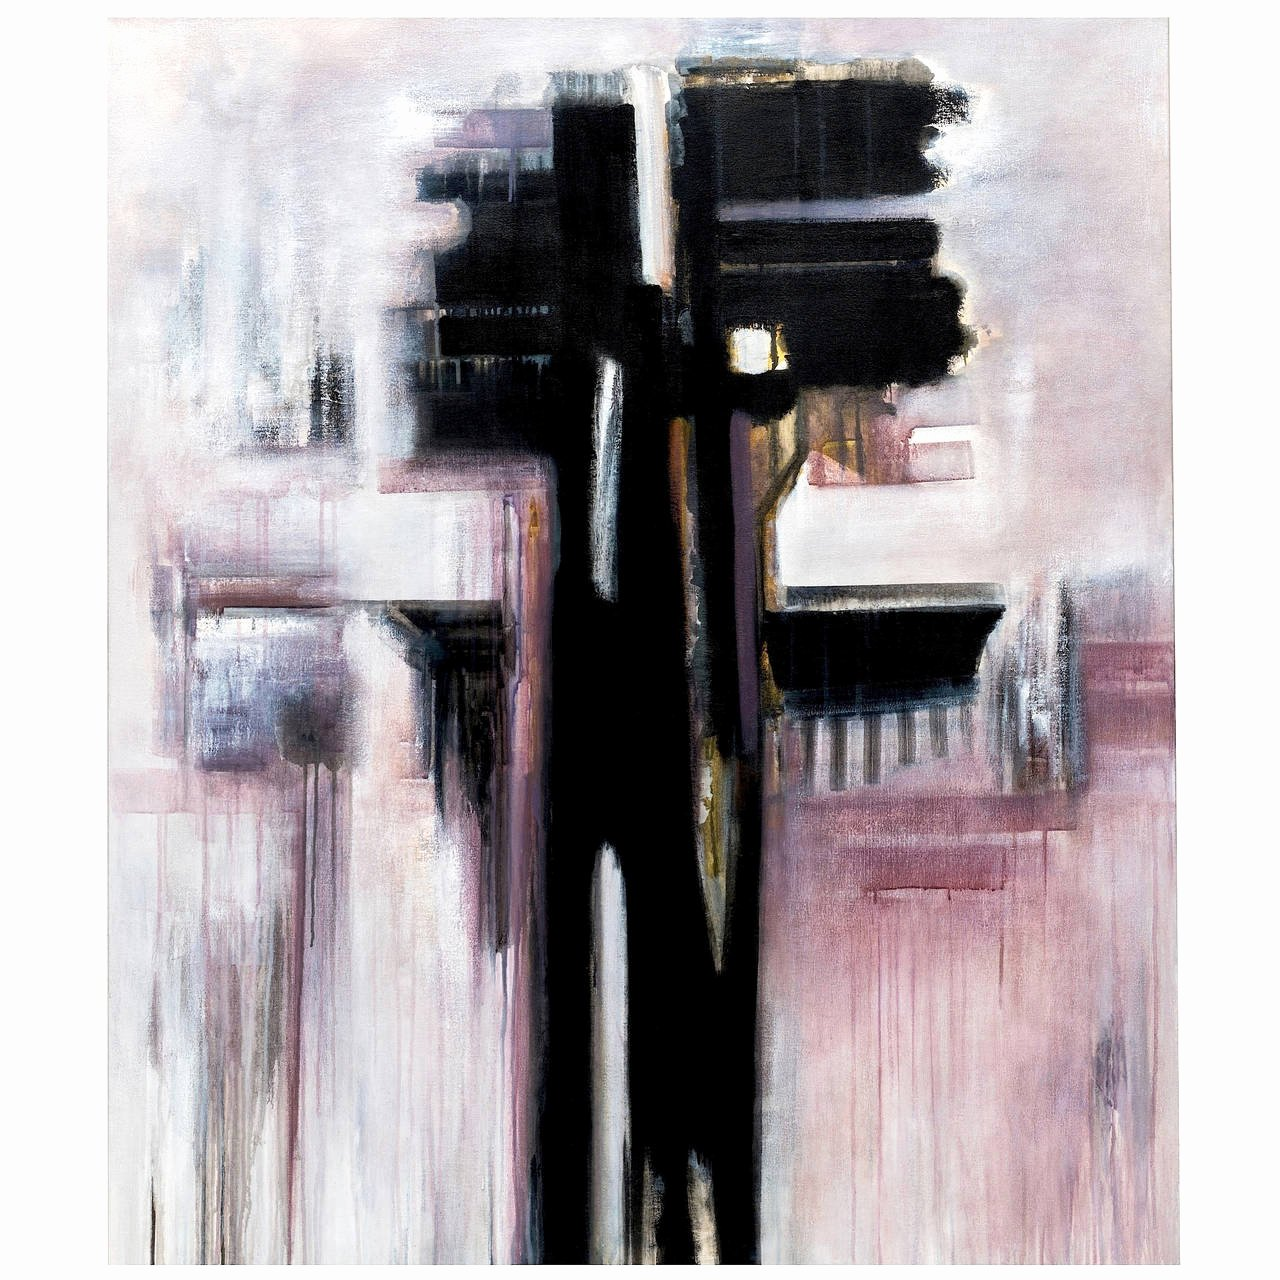 Black and White Abstract Painting Beautiful Modern Black and White Abstract Painting by Brazilian Artist Ivanilde Brunow for Sale at 1stdibs